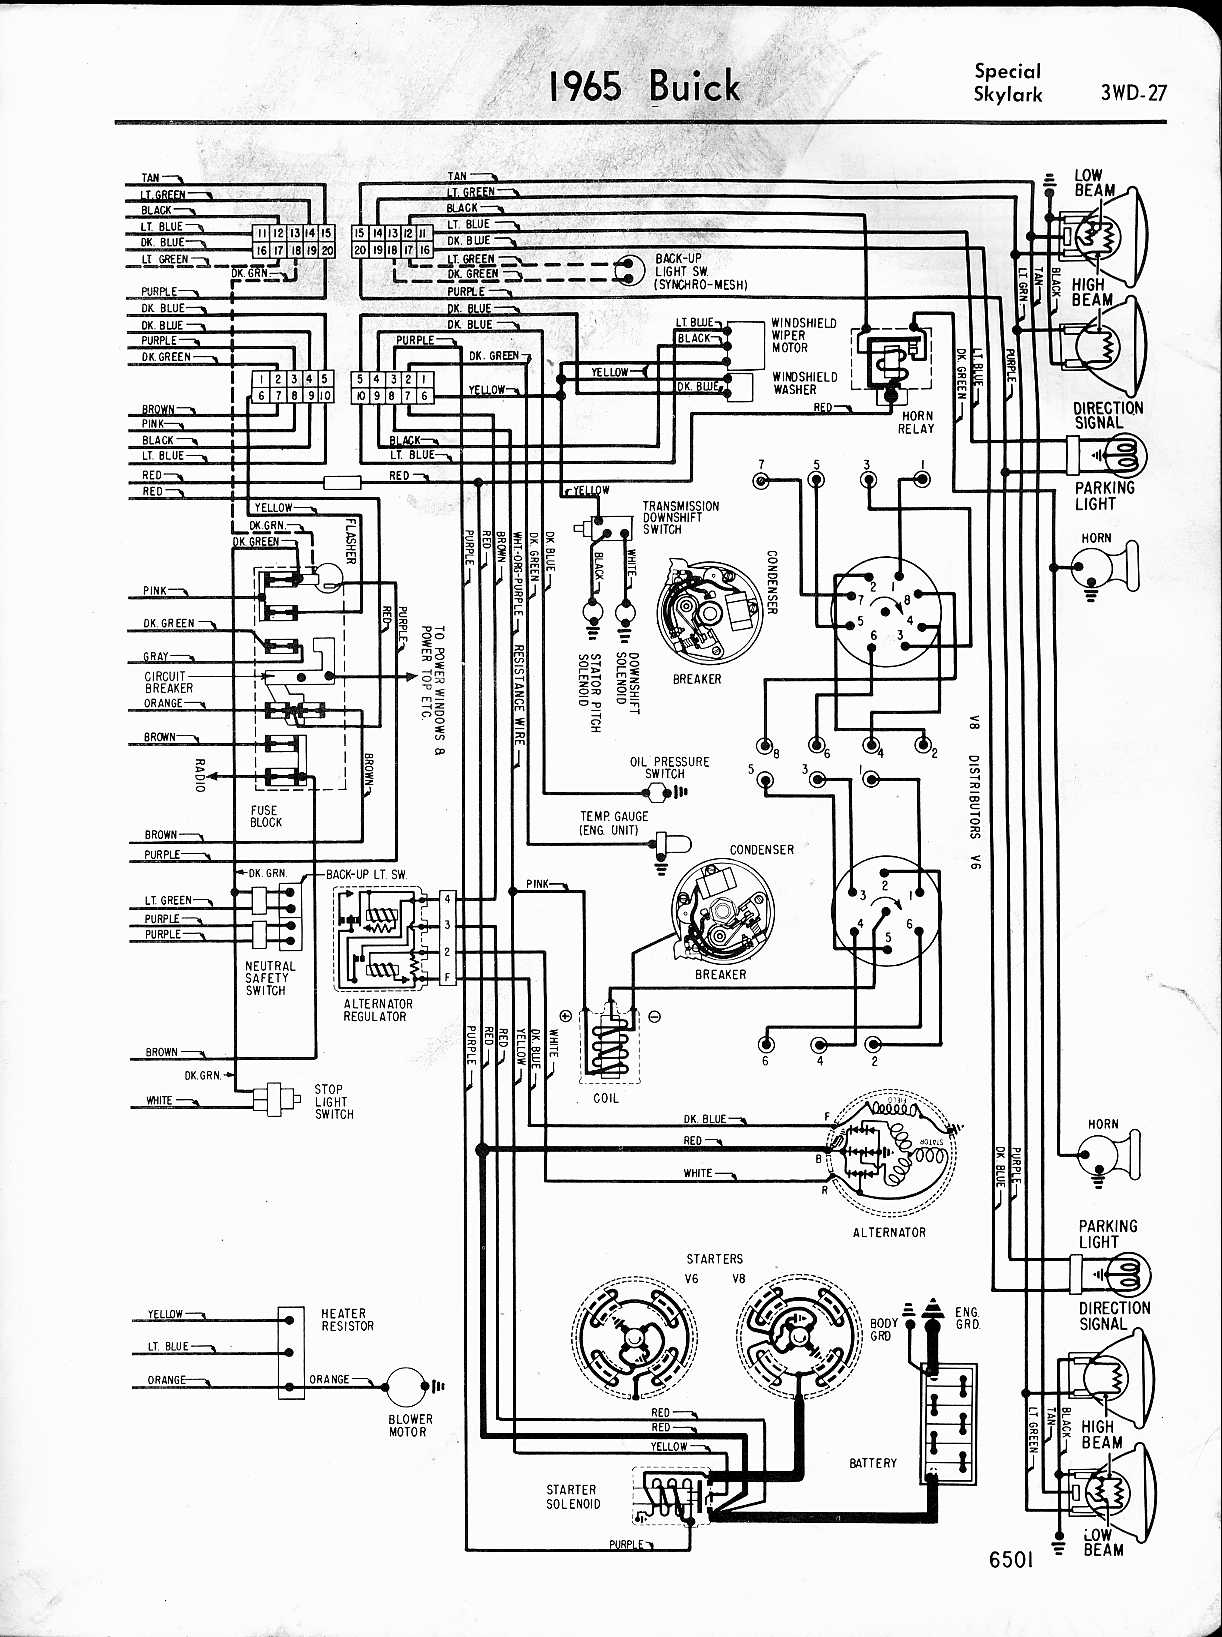 1960 buick wiring diagram wiring diagram ops  1960 buick wiring diagram #9